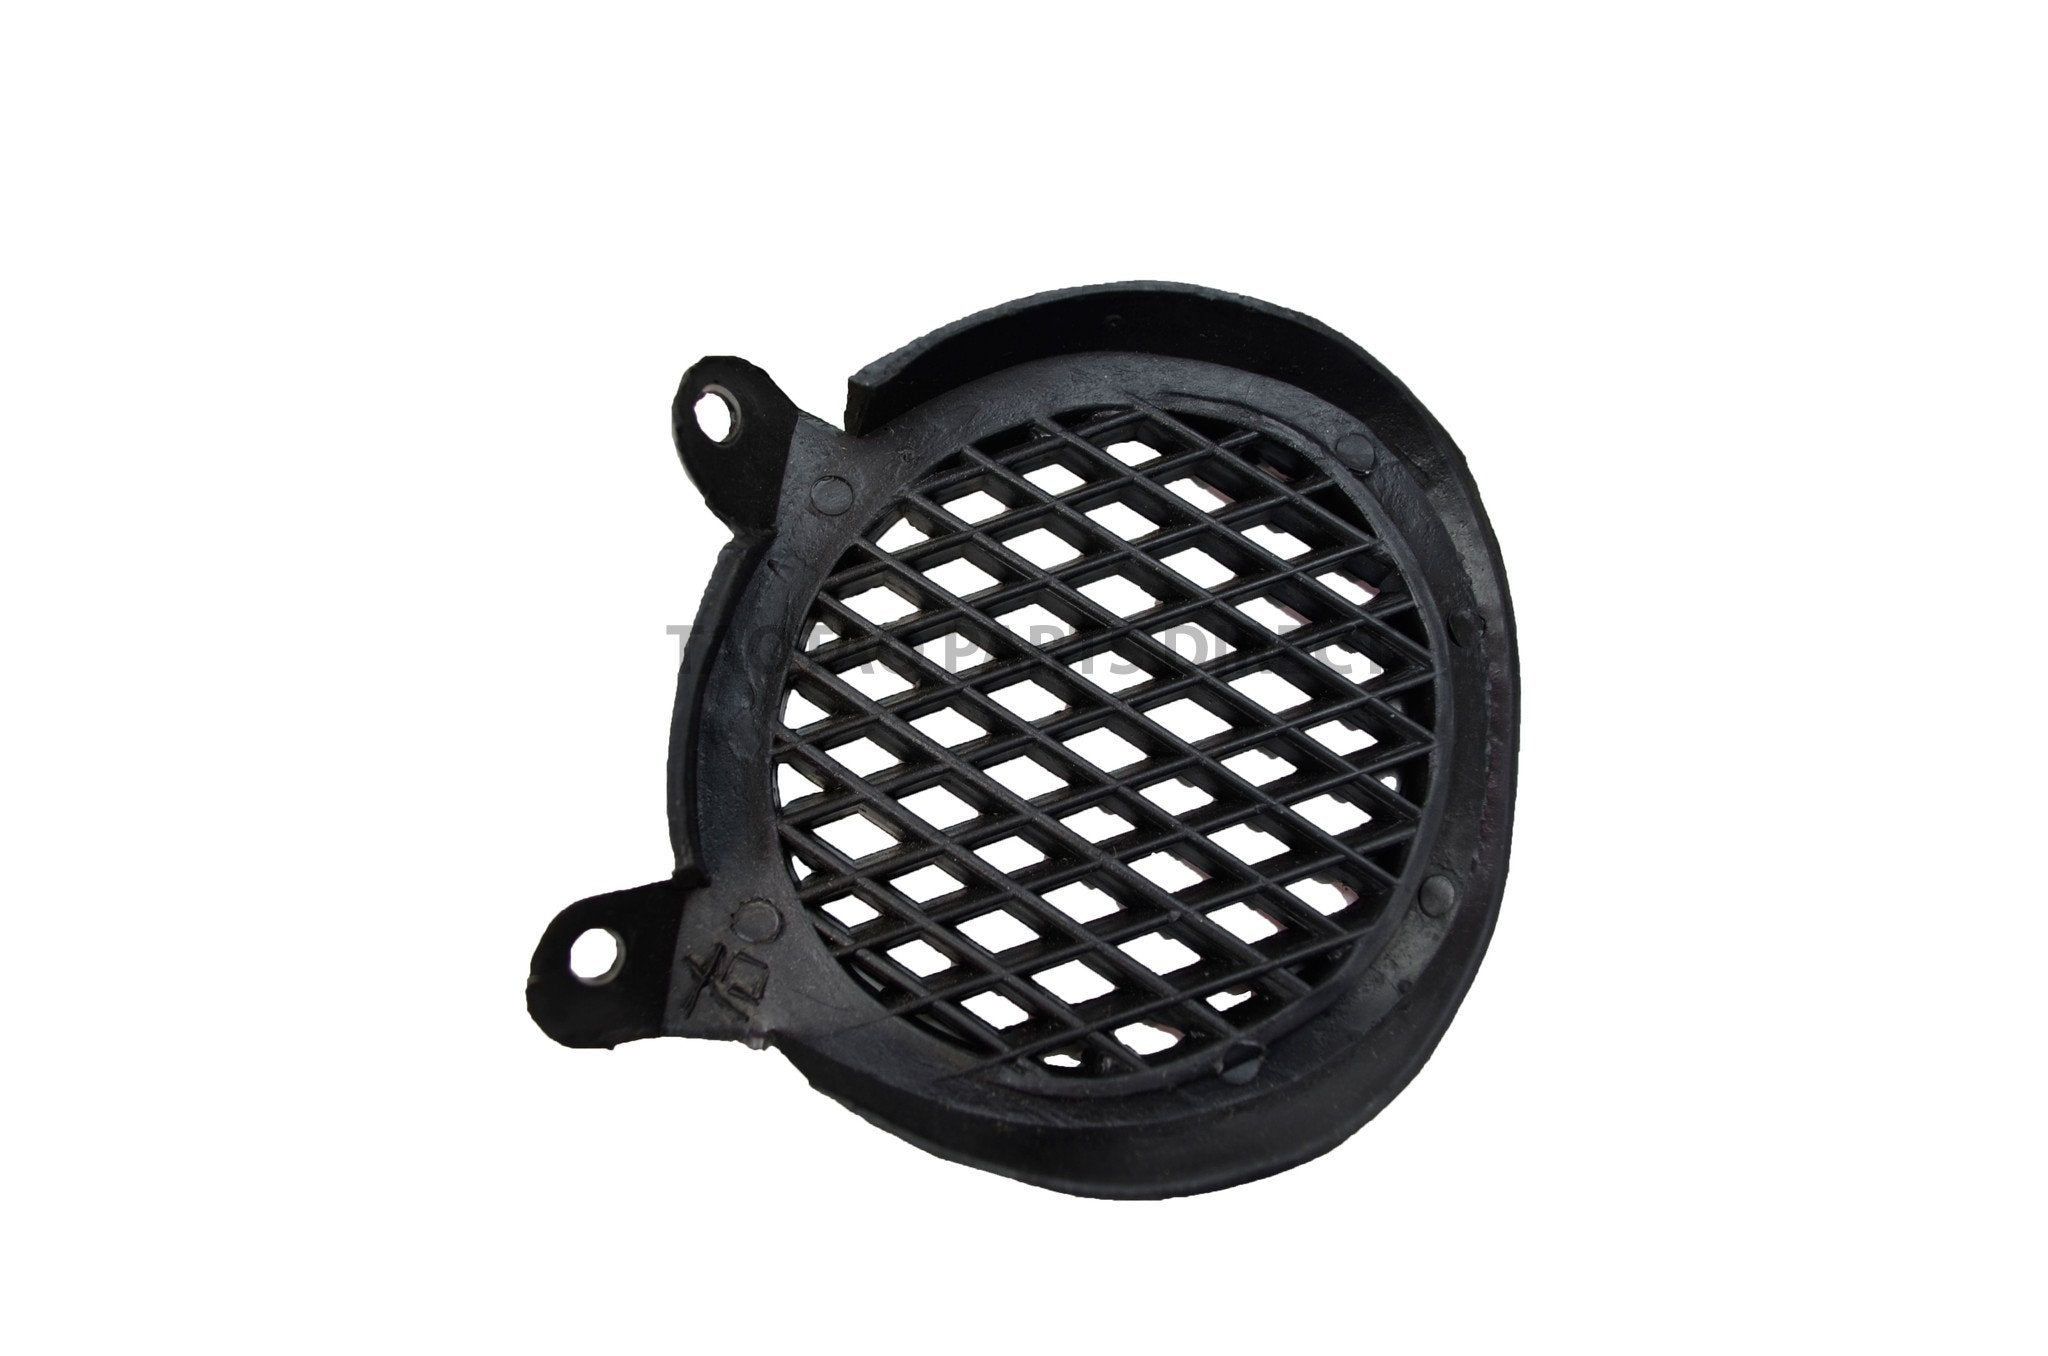 CY150B Rear Body Vent - TaoTaoPartsDirect.com